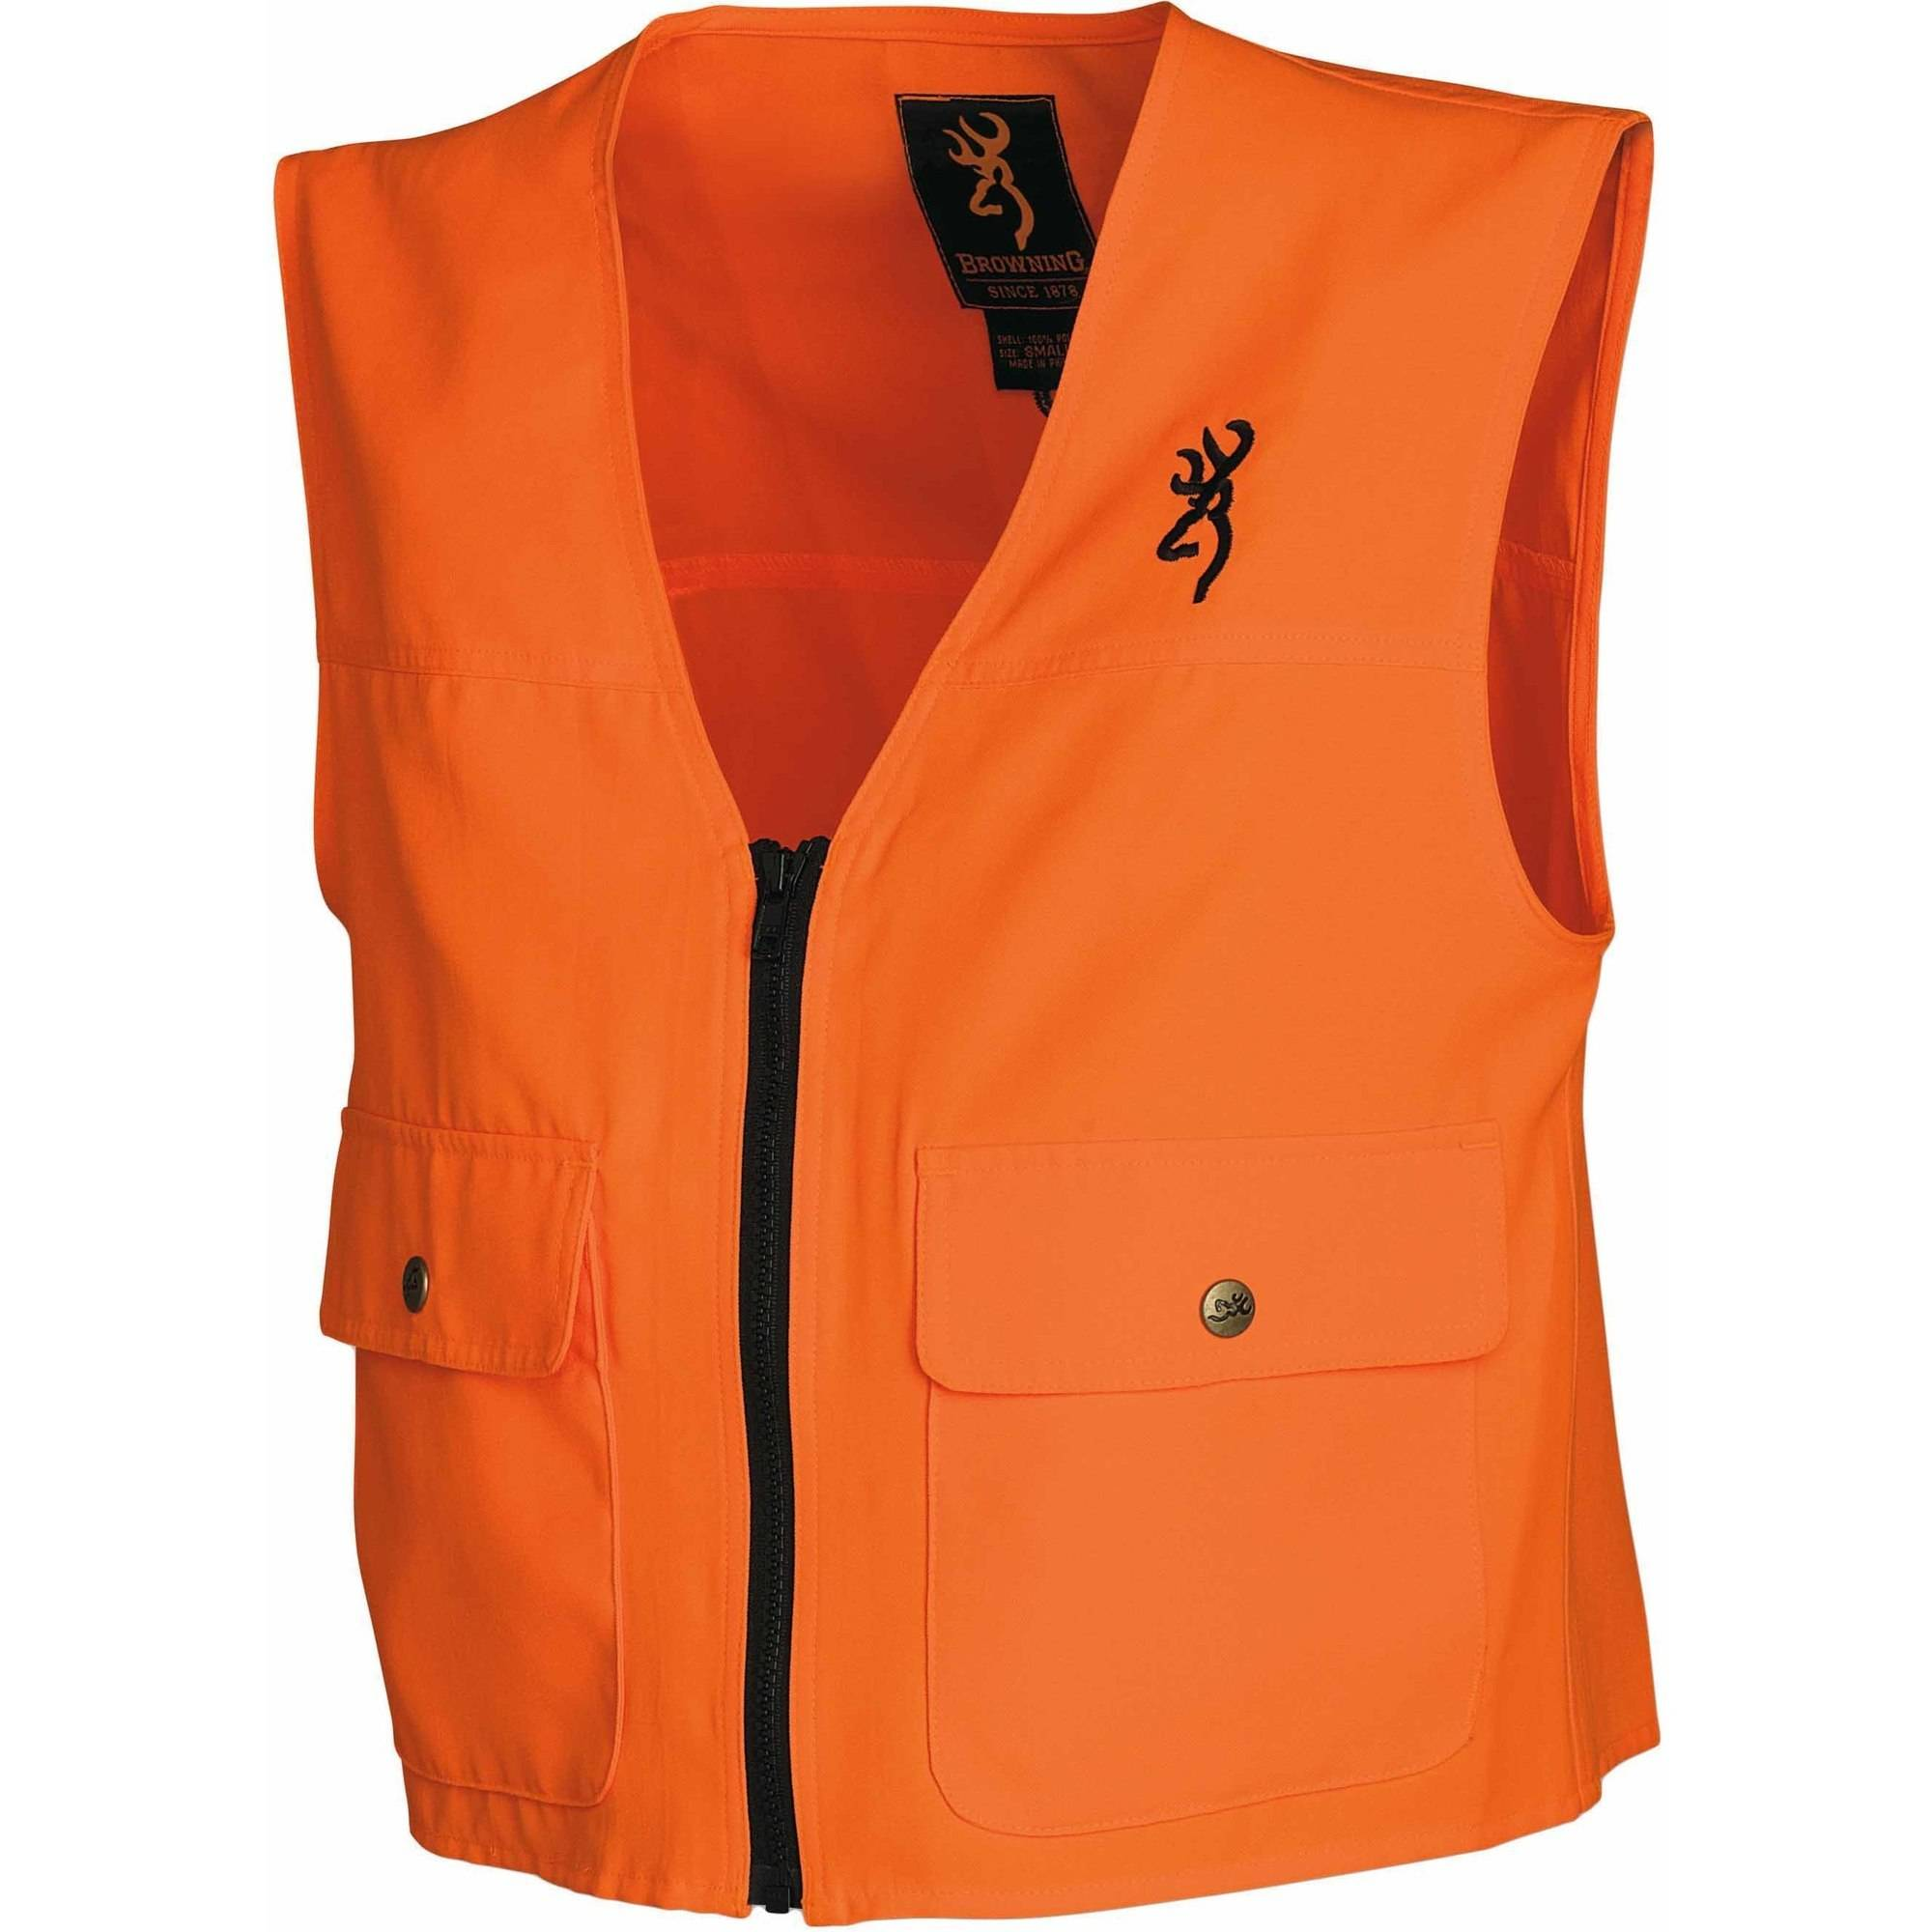 Junior Safety Vest by Browning